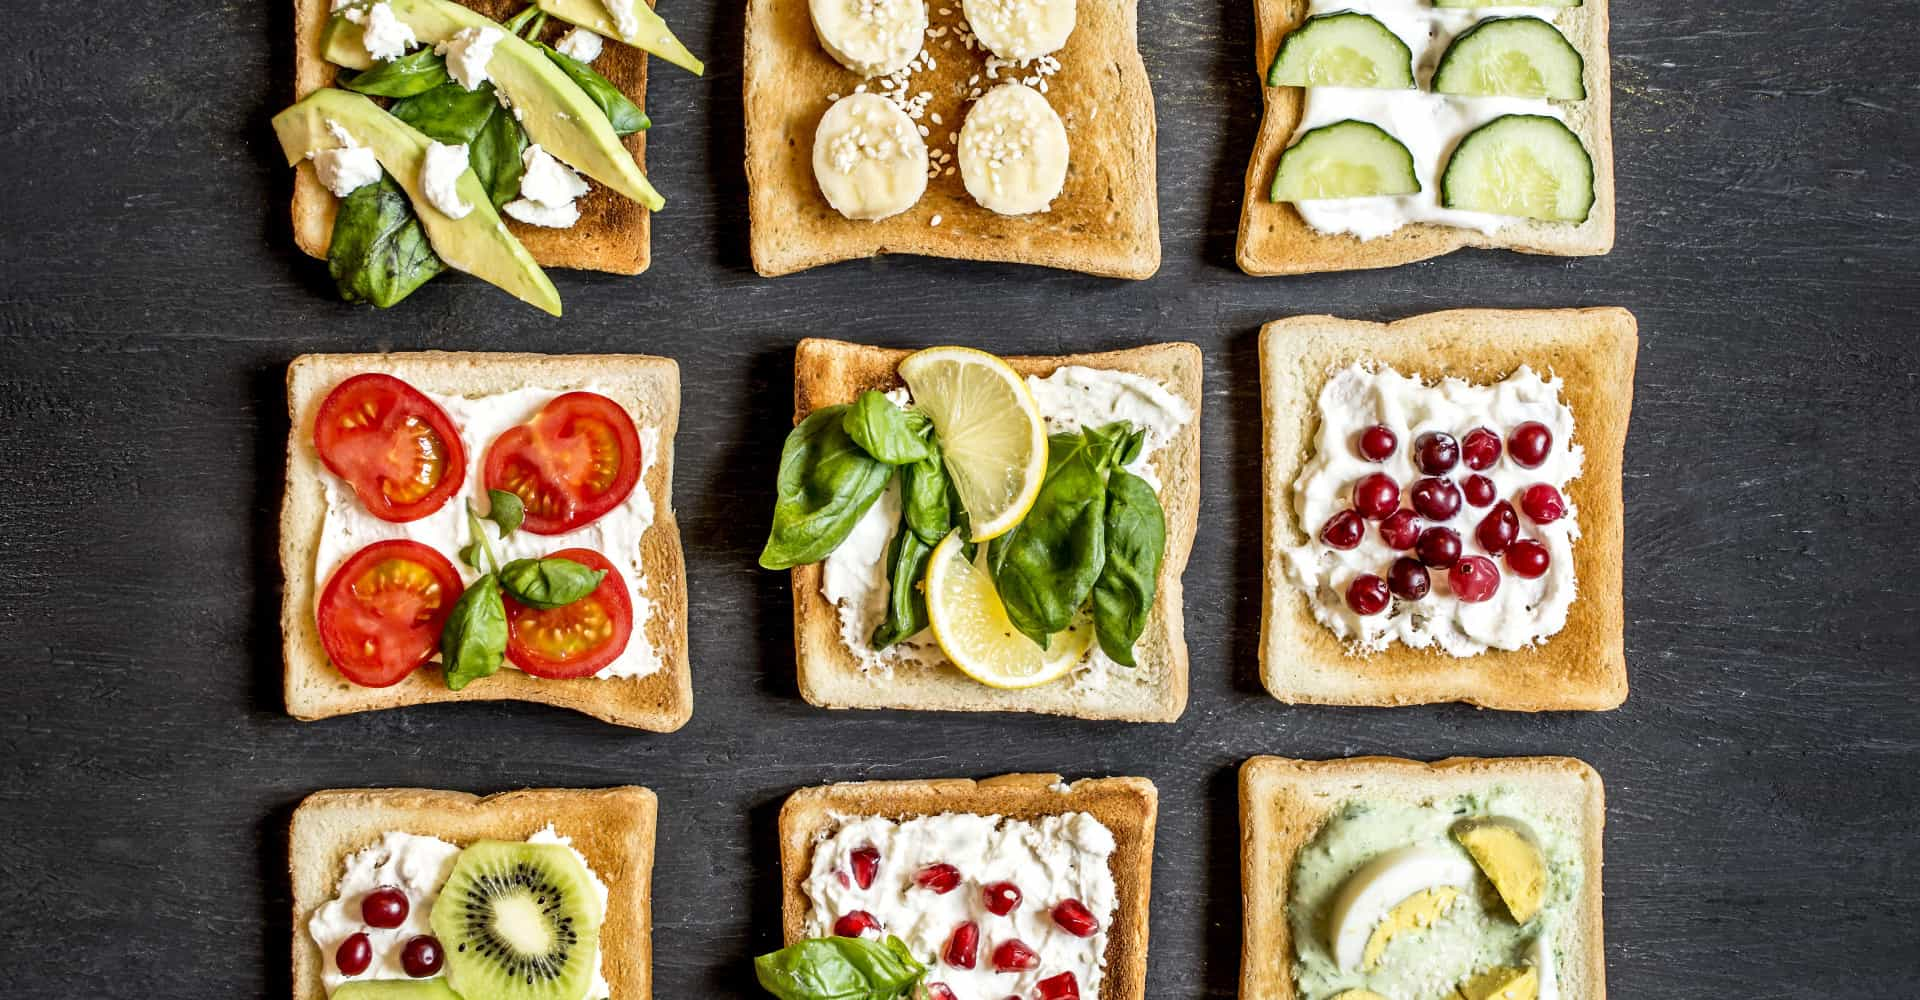 60 delicious toppings for National Toast Day!